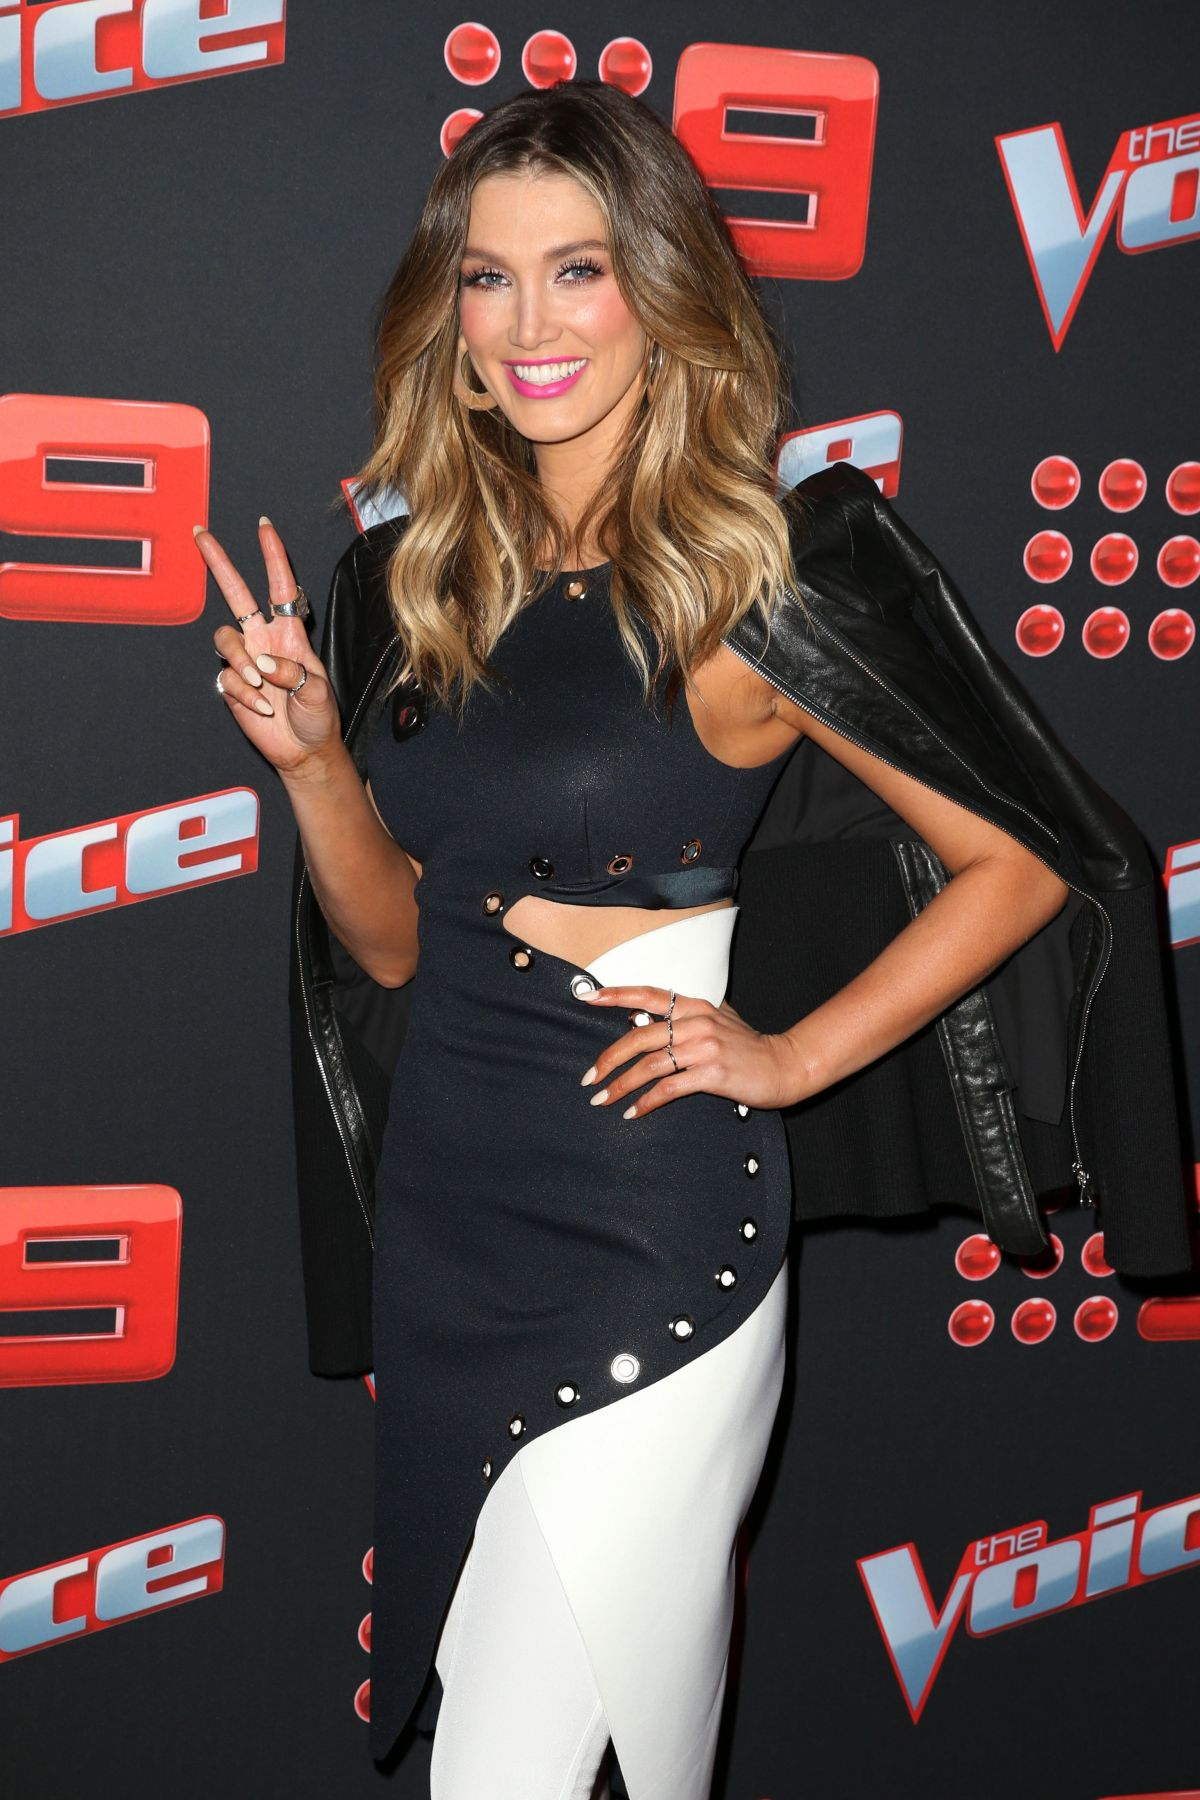 DELTA GOODREM at The Voice Live Show Launch Party in Sydney 05/31/2017